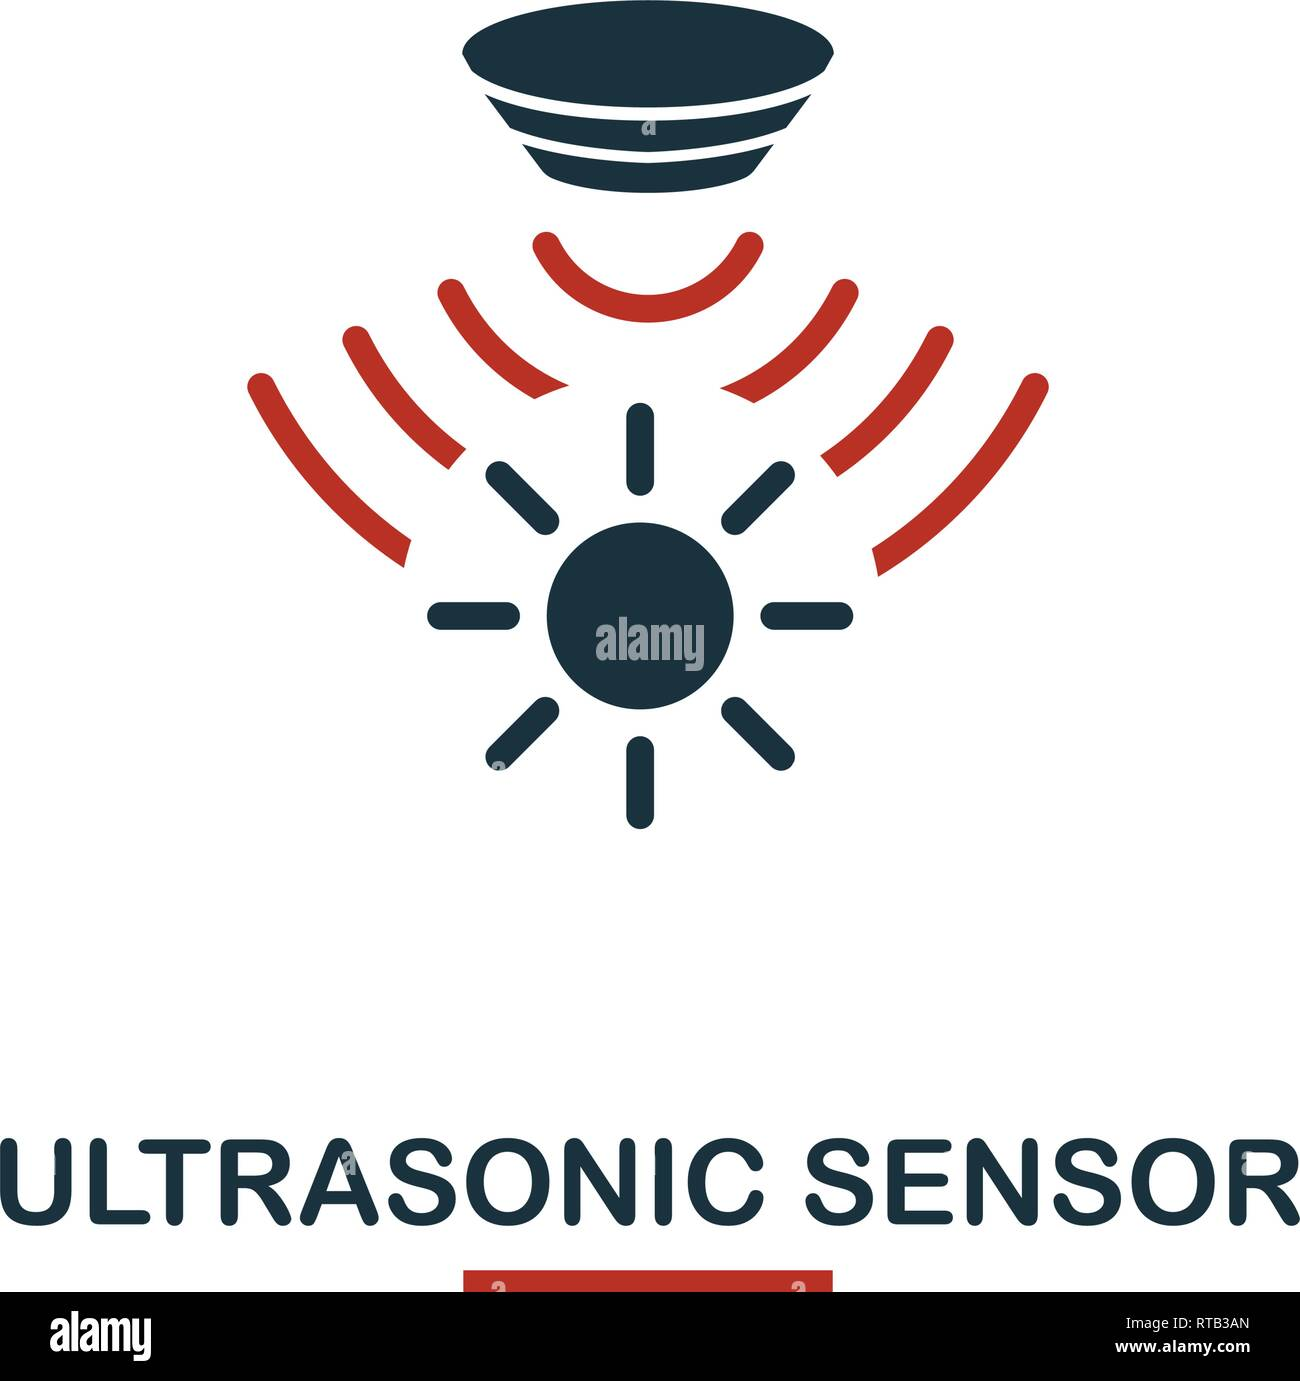 Ultrasonic Sensor icon from sensors icons collection. Creative two colors design symbol ultrasonic sensor icon. Web design, apps, software usage. UI - Stock Image